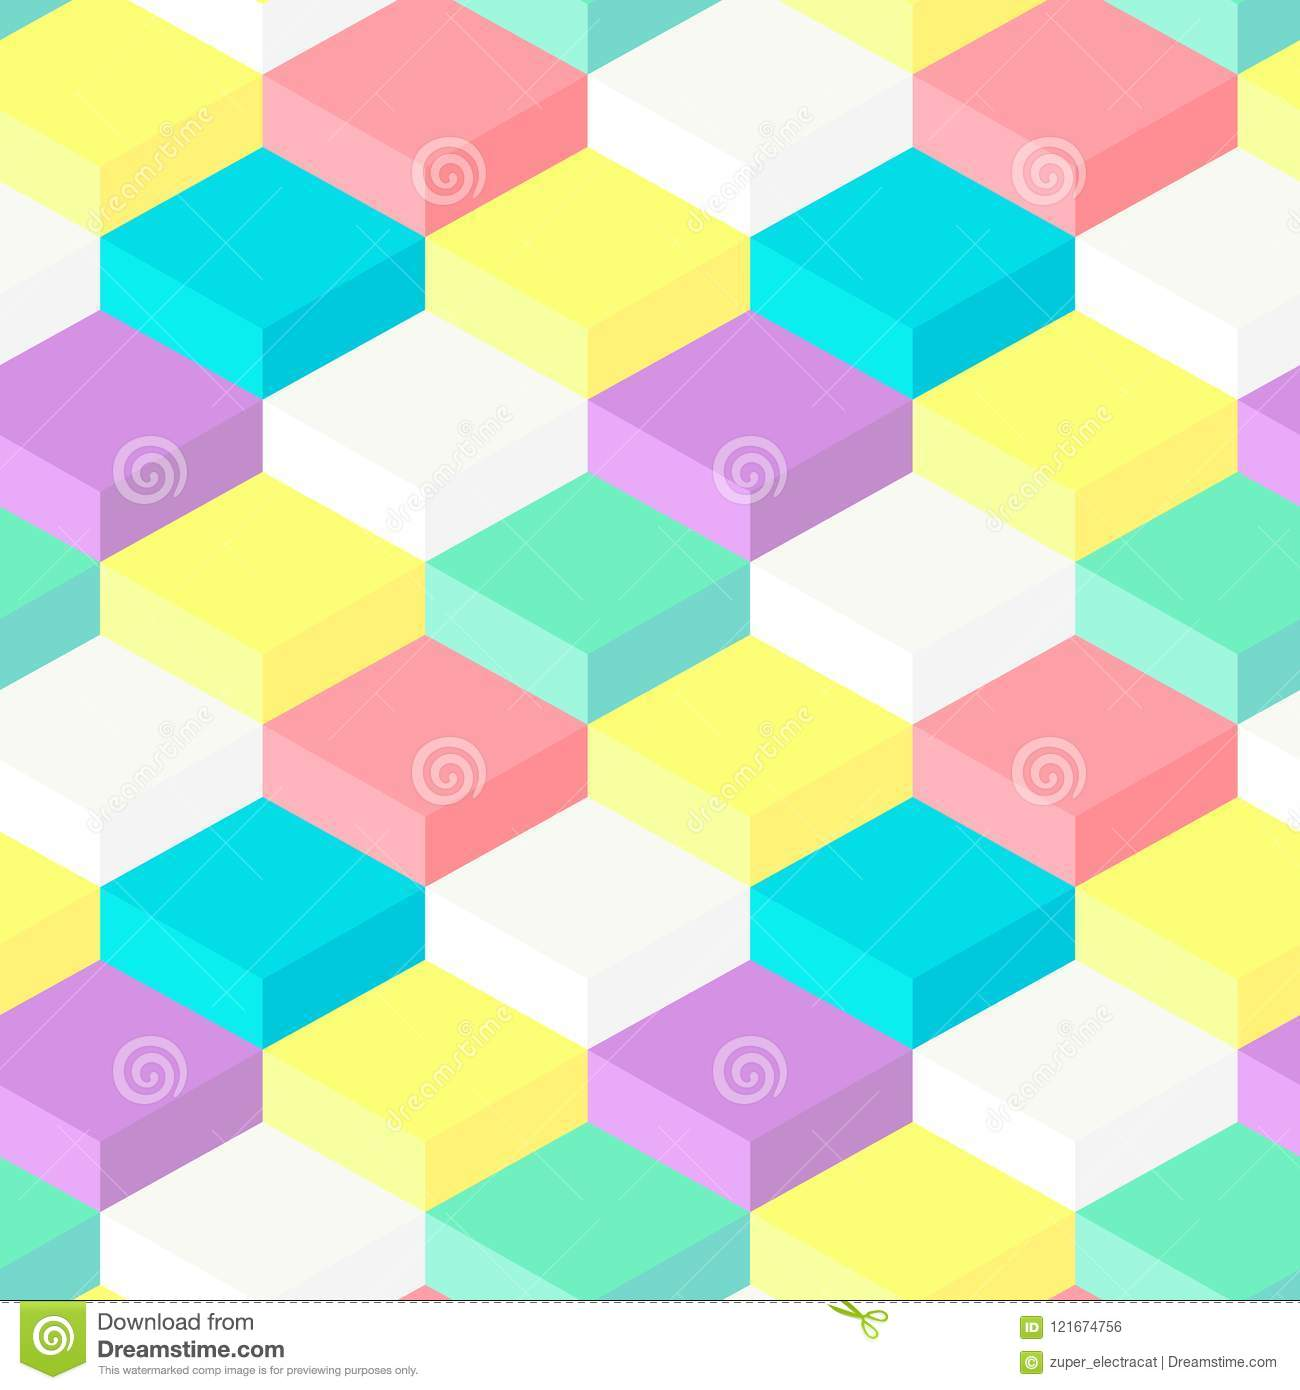 Seamless Pattern Of 3D Geometric Shapes Stock Vector - Illustration